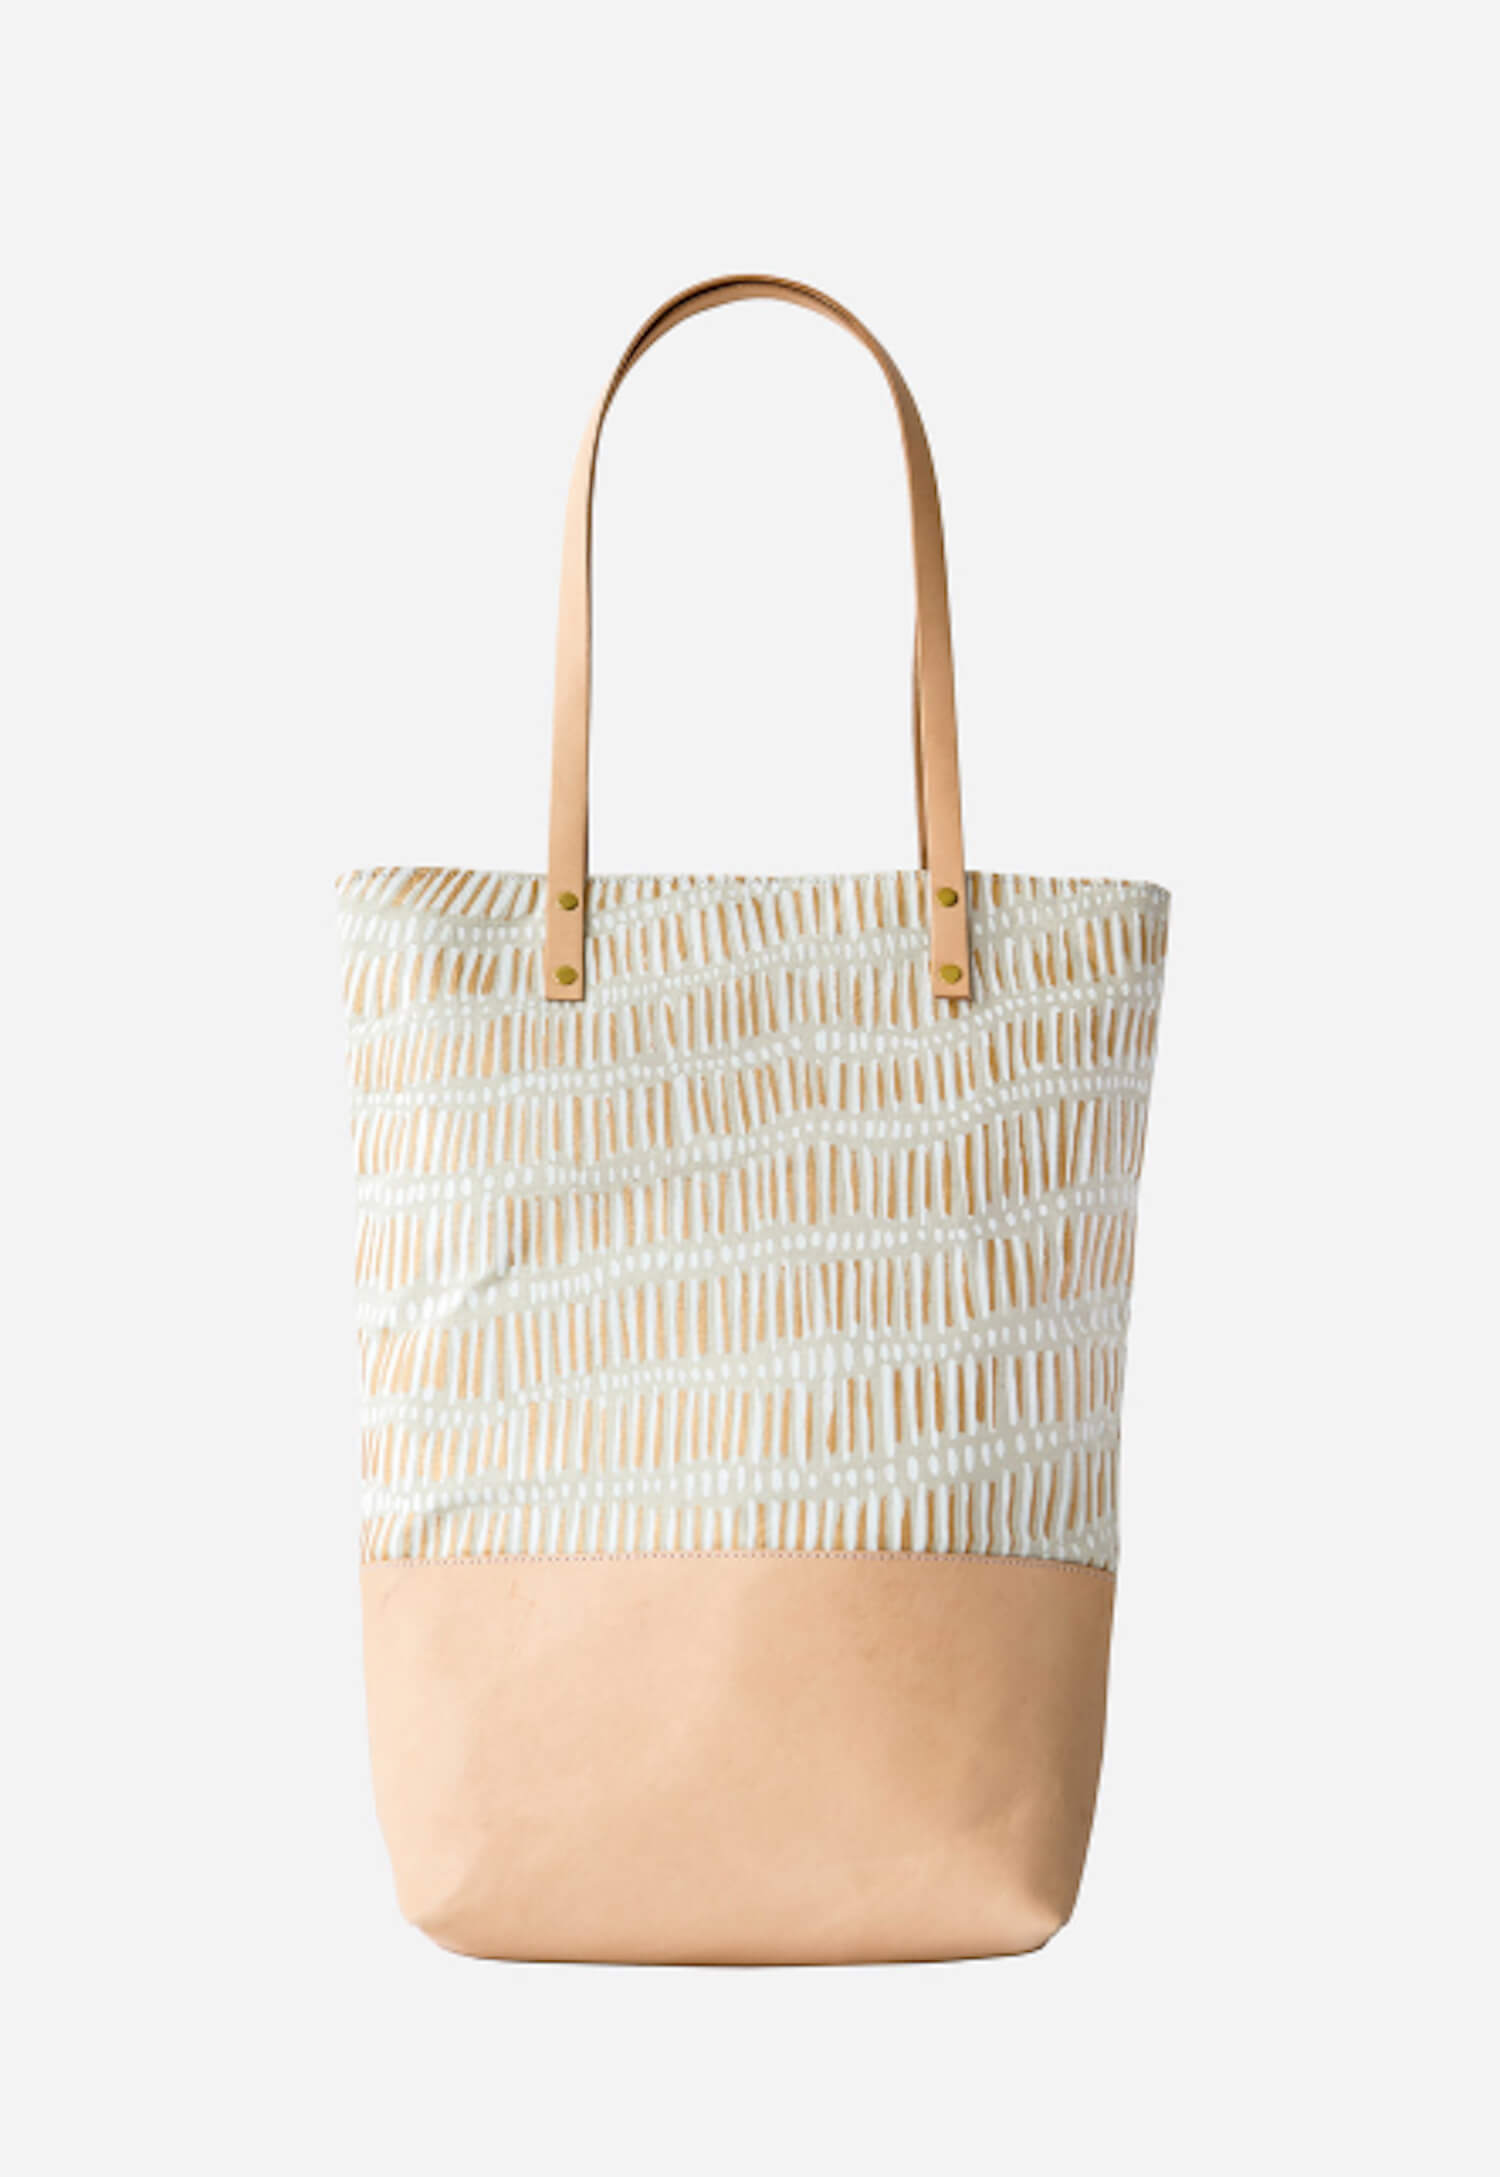 est living est edit indigenous artisans north home bag 1